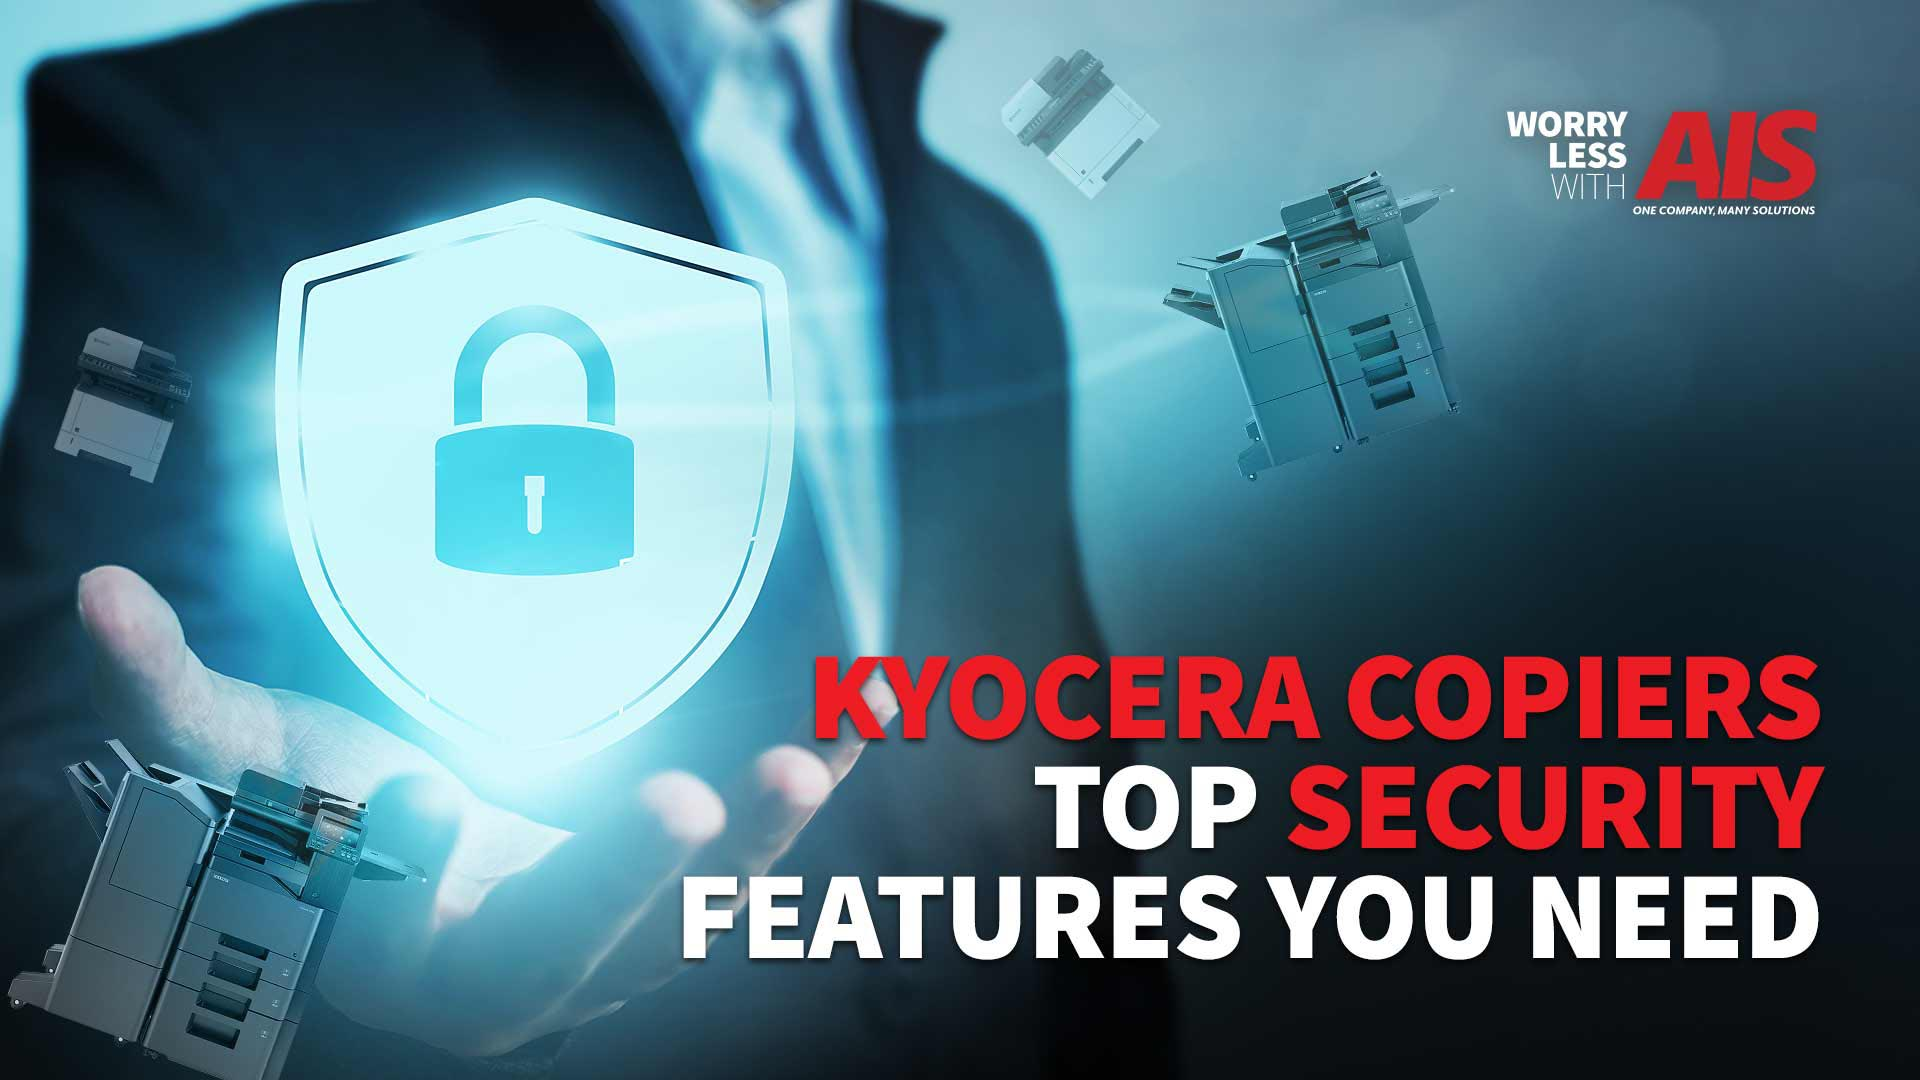 Kyocera Copiers: Top Security Features You Need